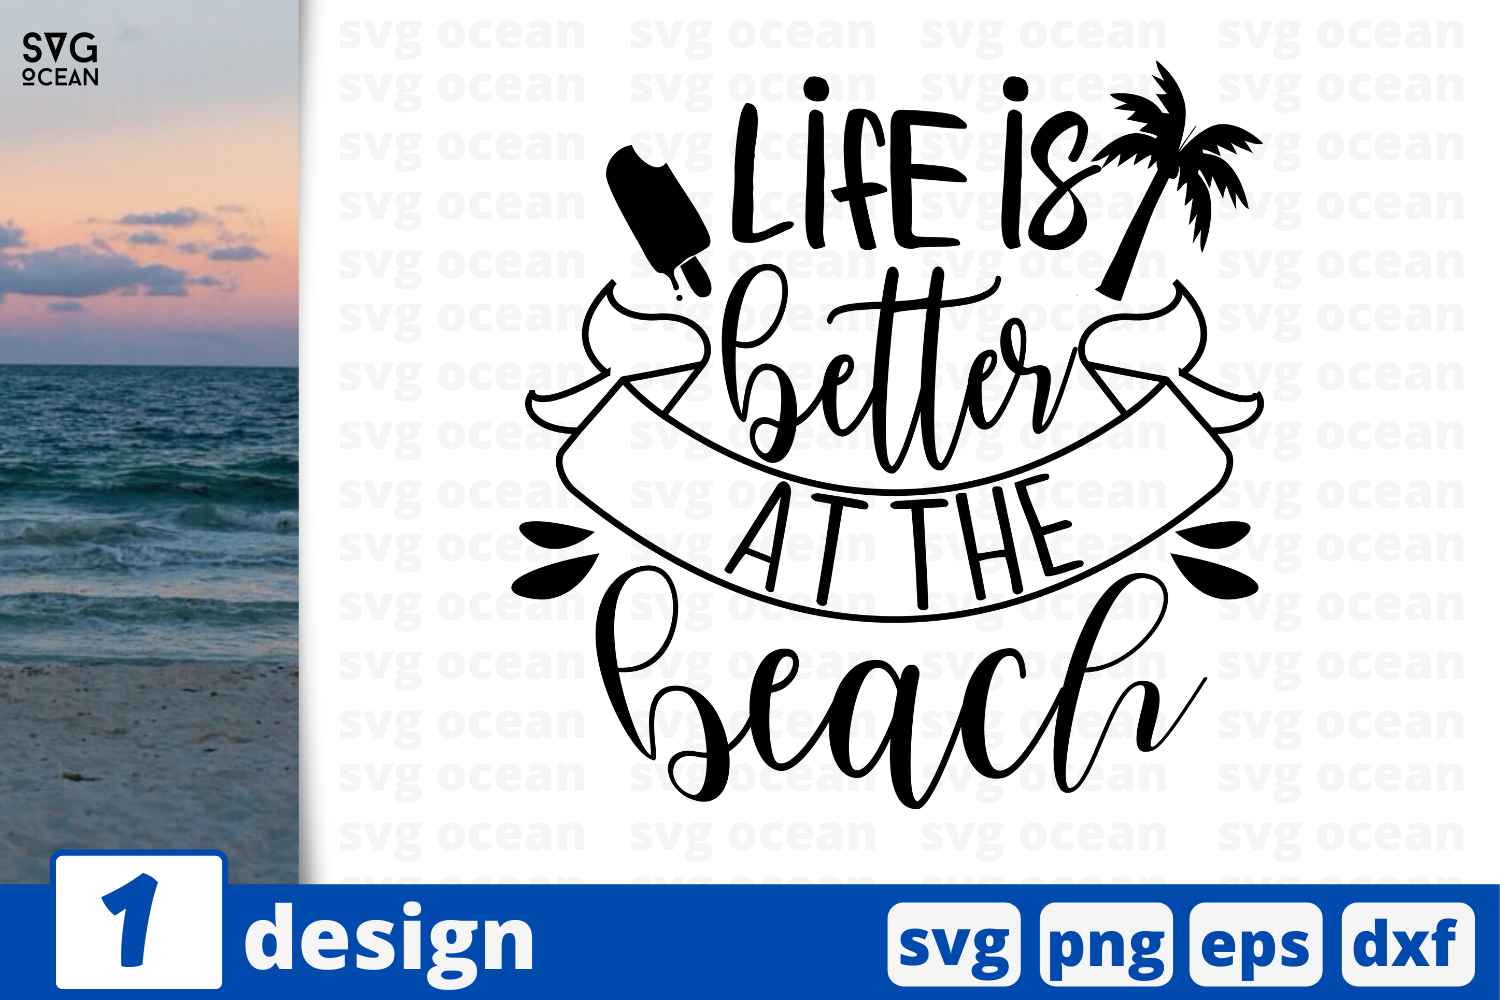 Download Free 1 Life Is Better At The Beach Summer Svg Graphic By Svgocean for Cricut Explore, Silhouette and other cutting machines.